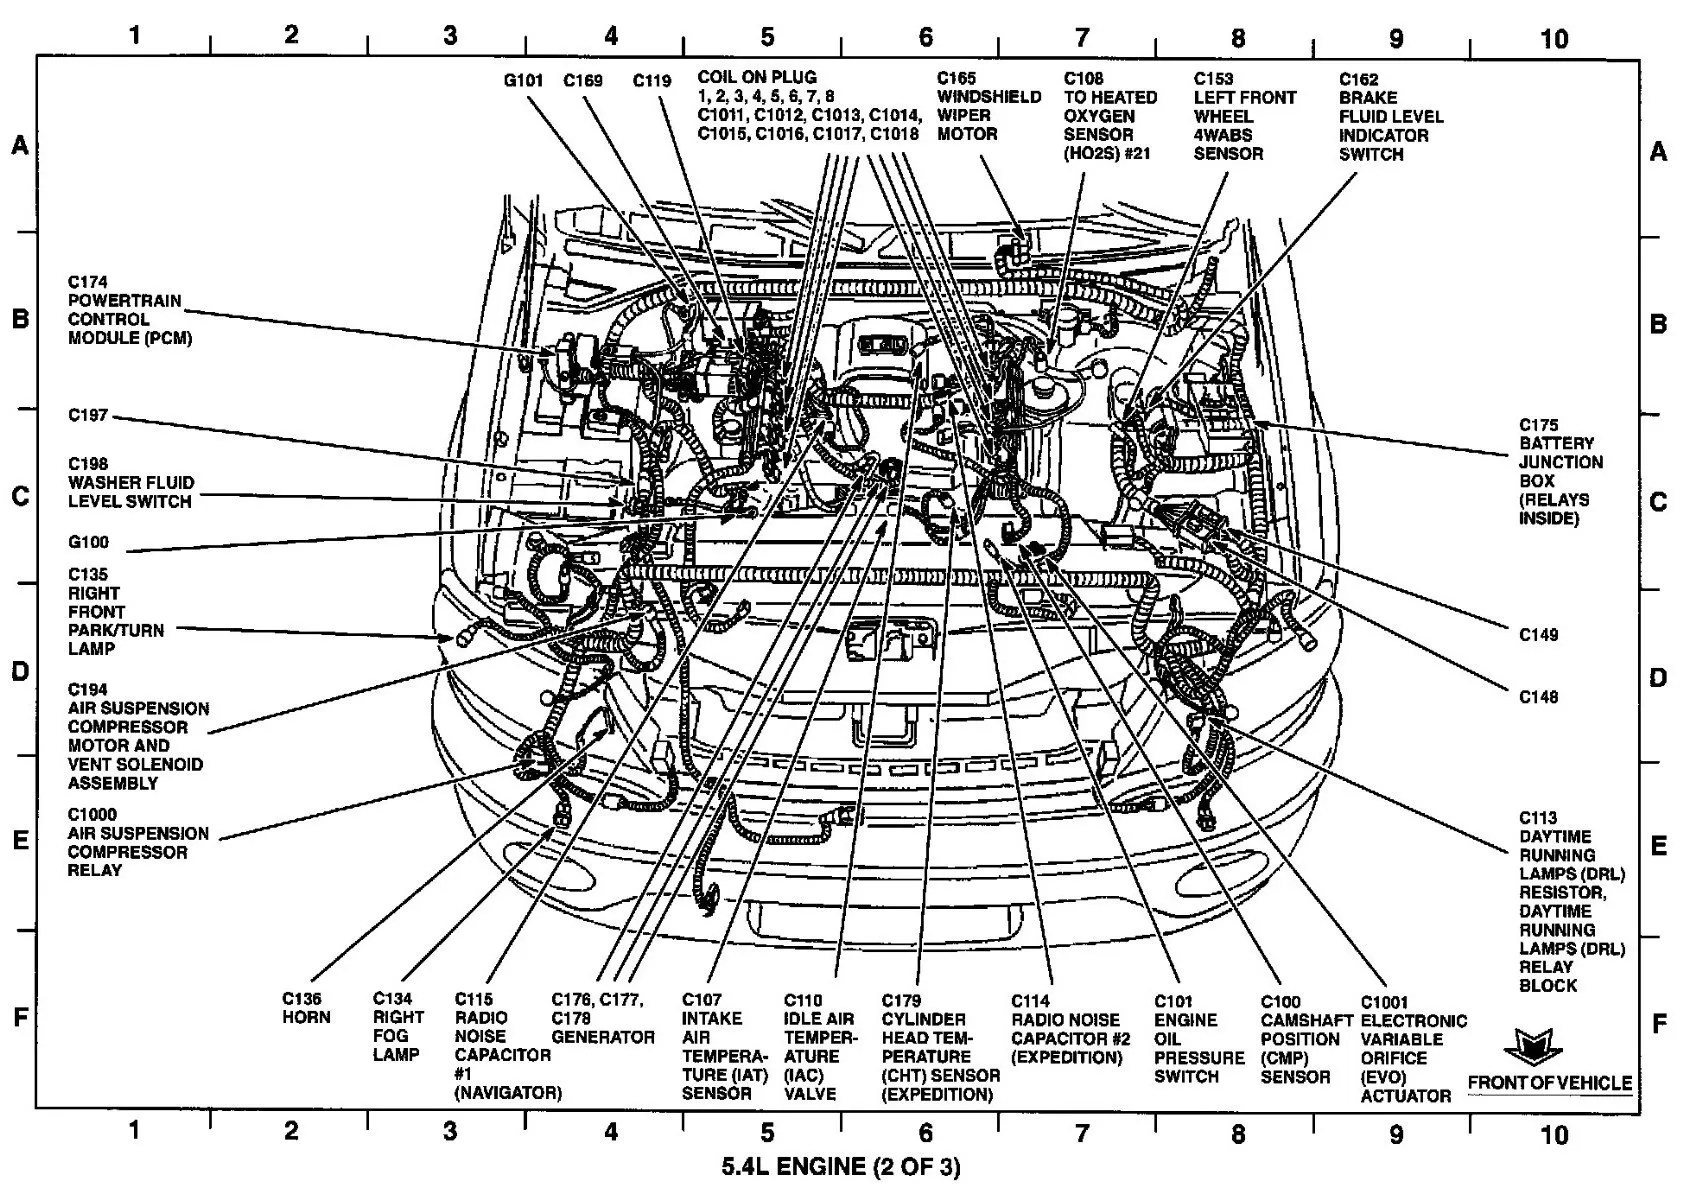 hight resolution of bmw 323i engine diagram schema wiring diagram 1996 bmw 323i engine diagram wiring diagram toolbox 2000